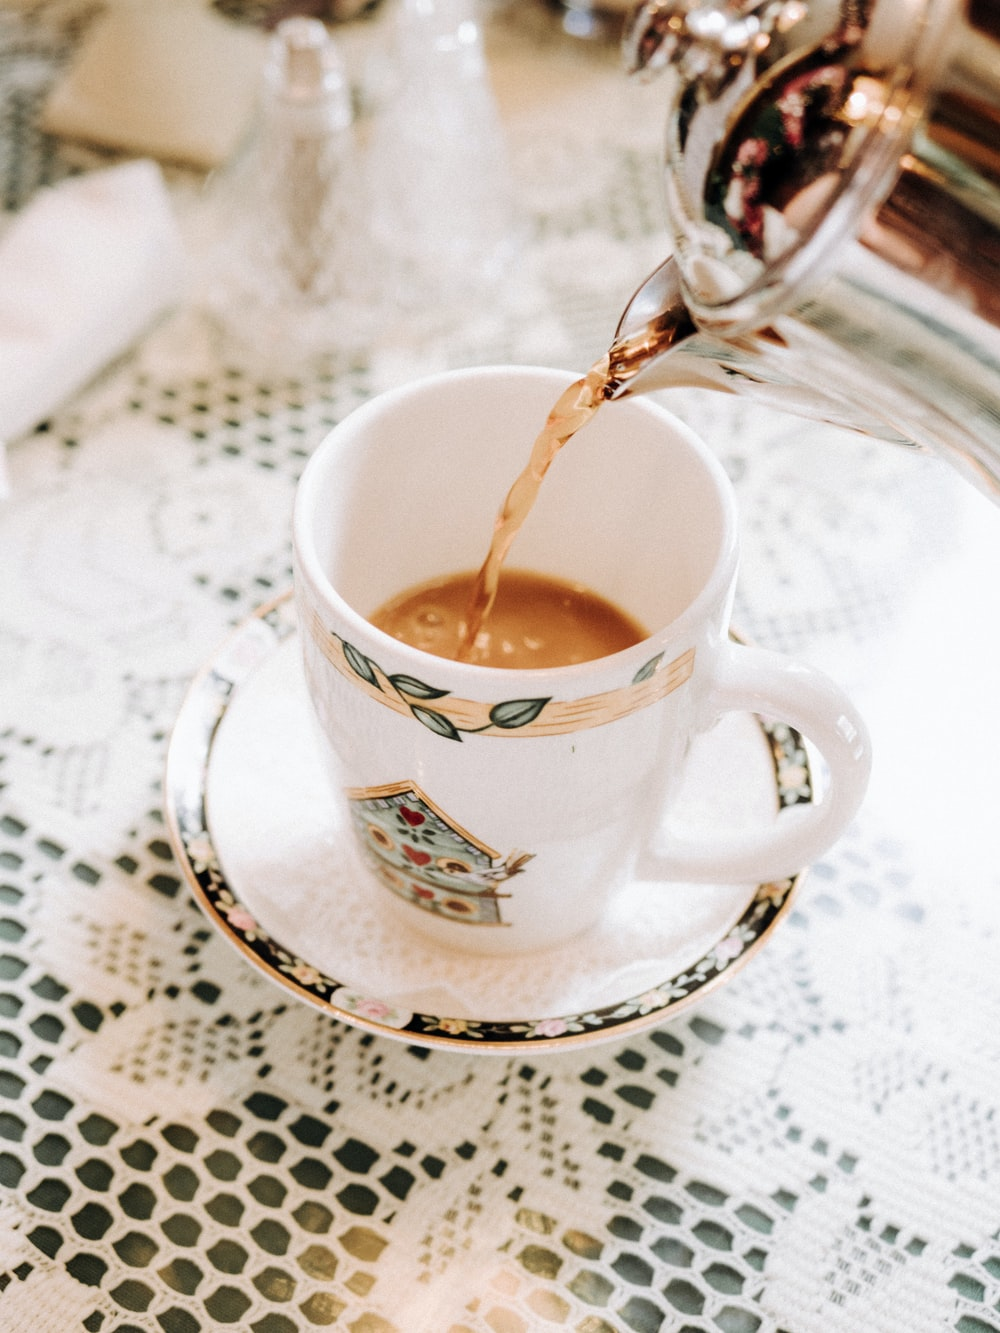 500+ Tea Cup Pictures | Download Free Images on Unsplash